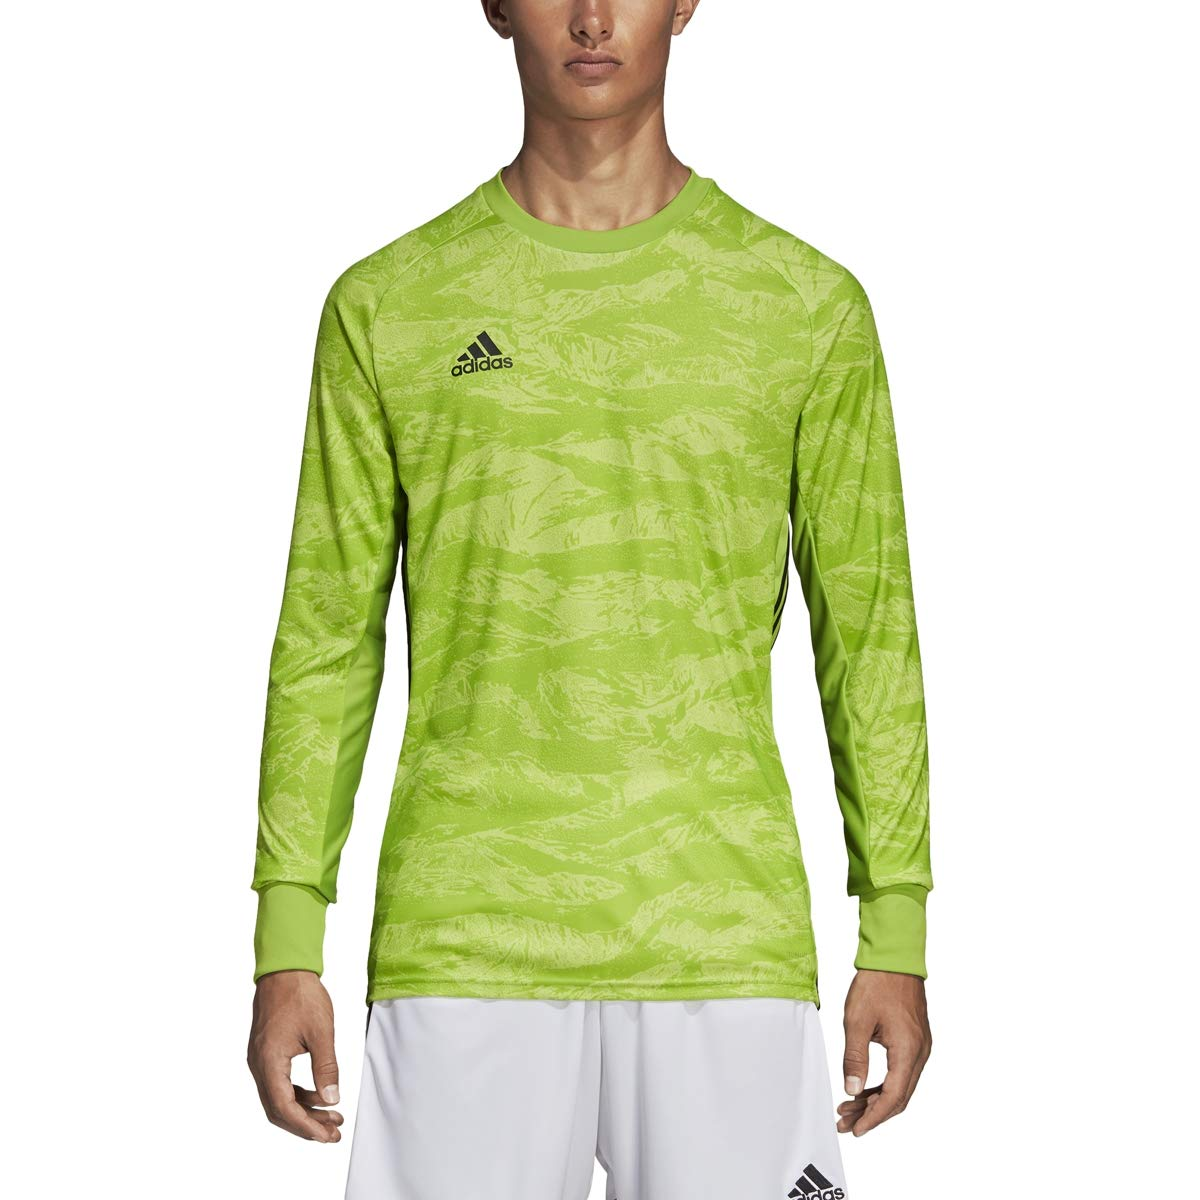 adidas AdiPro 18 Goalkeeper Jersey - Men's Soccer YM Semi Solar Green by adidas